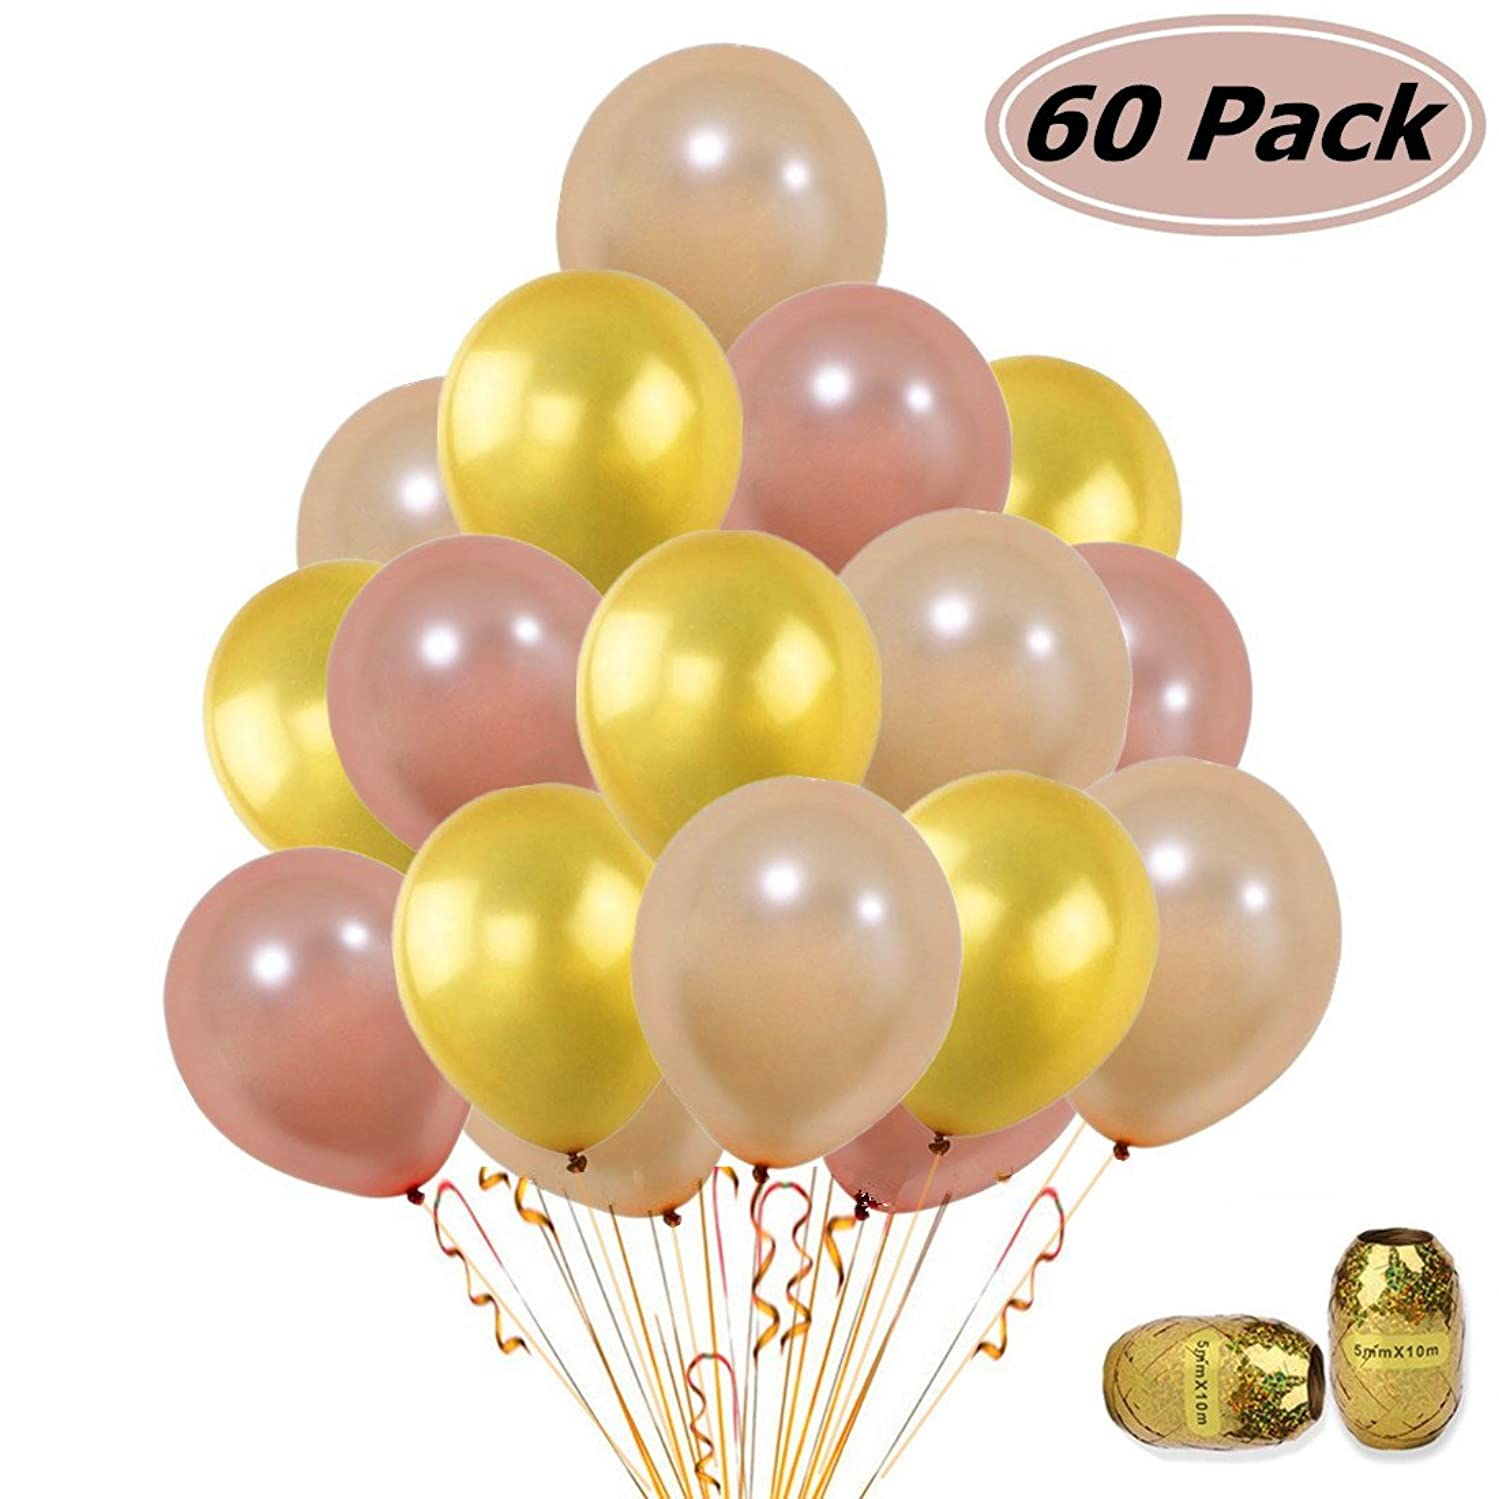 60Pcs Gold & Rose Gold & Champagne Gold Color Latex Party Balloons for Wedding Hawaii Graduation Birthday Party Decoration Supplies Bonus Ribbon (Radom Color)